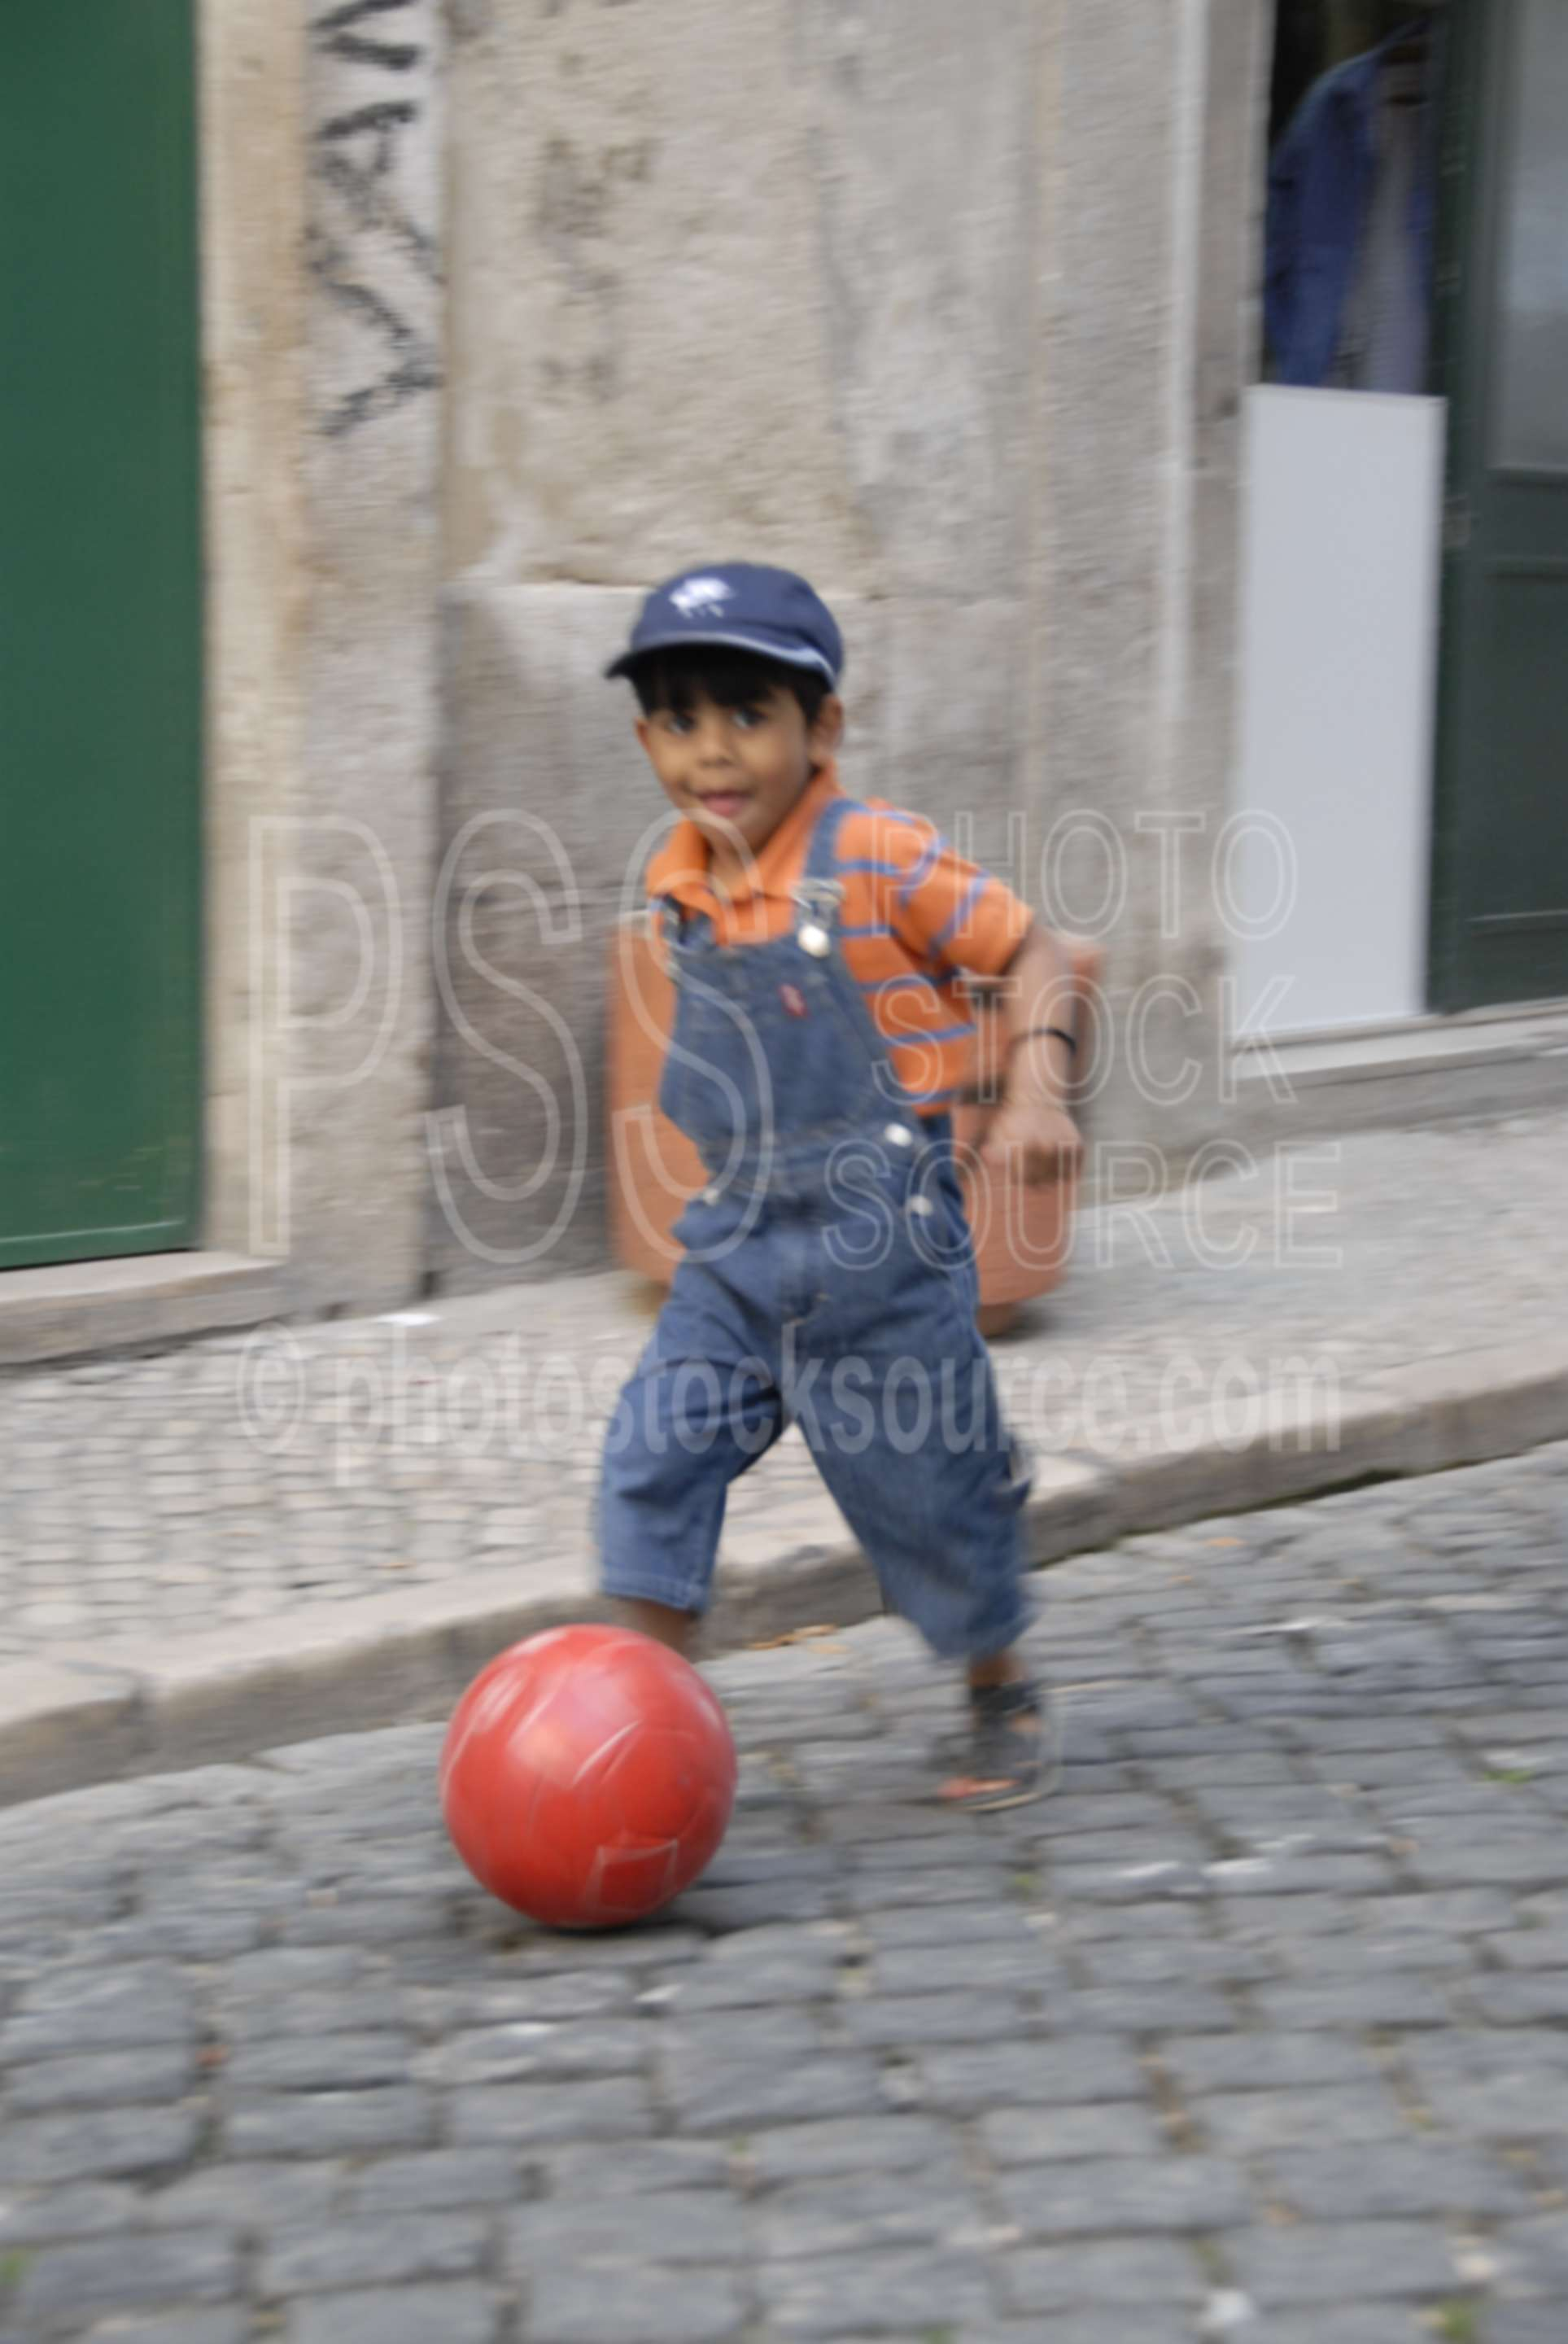 Soccer Boy,boys,young,ball,soccer,football,red ball,child,children,play,playing,children